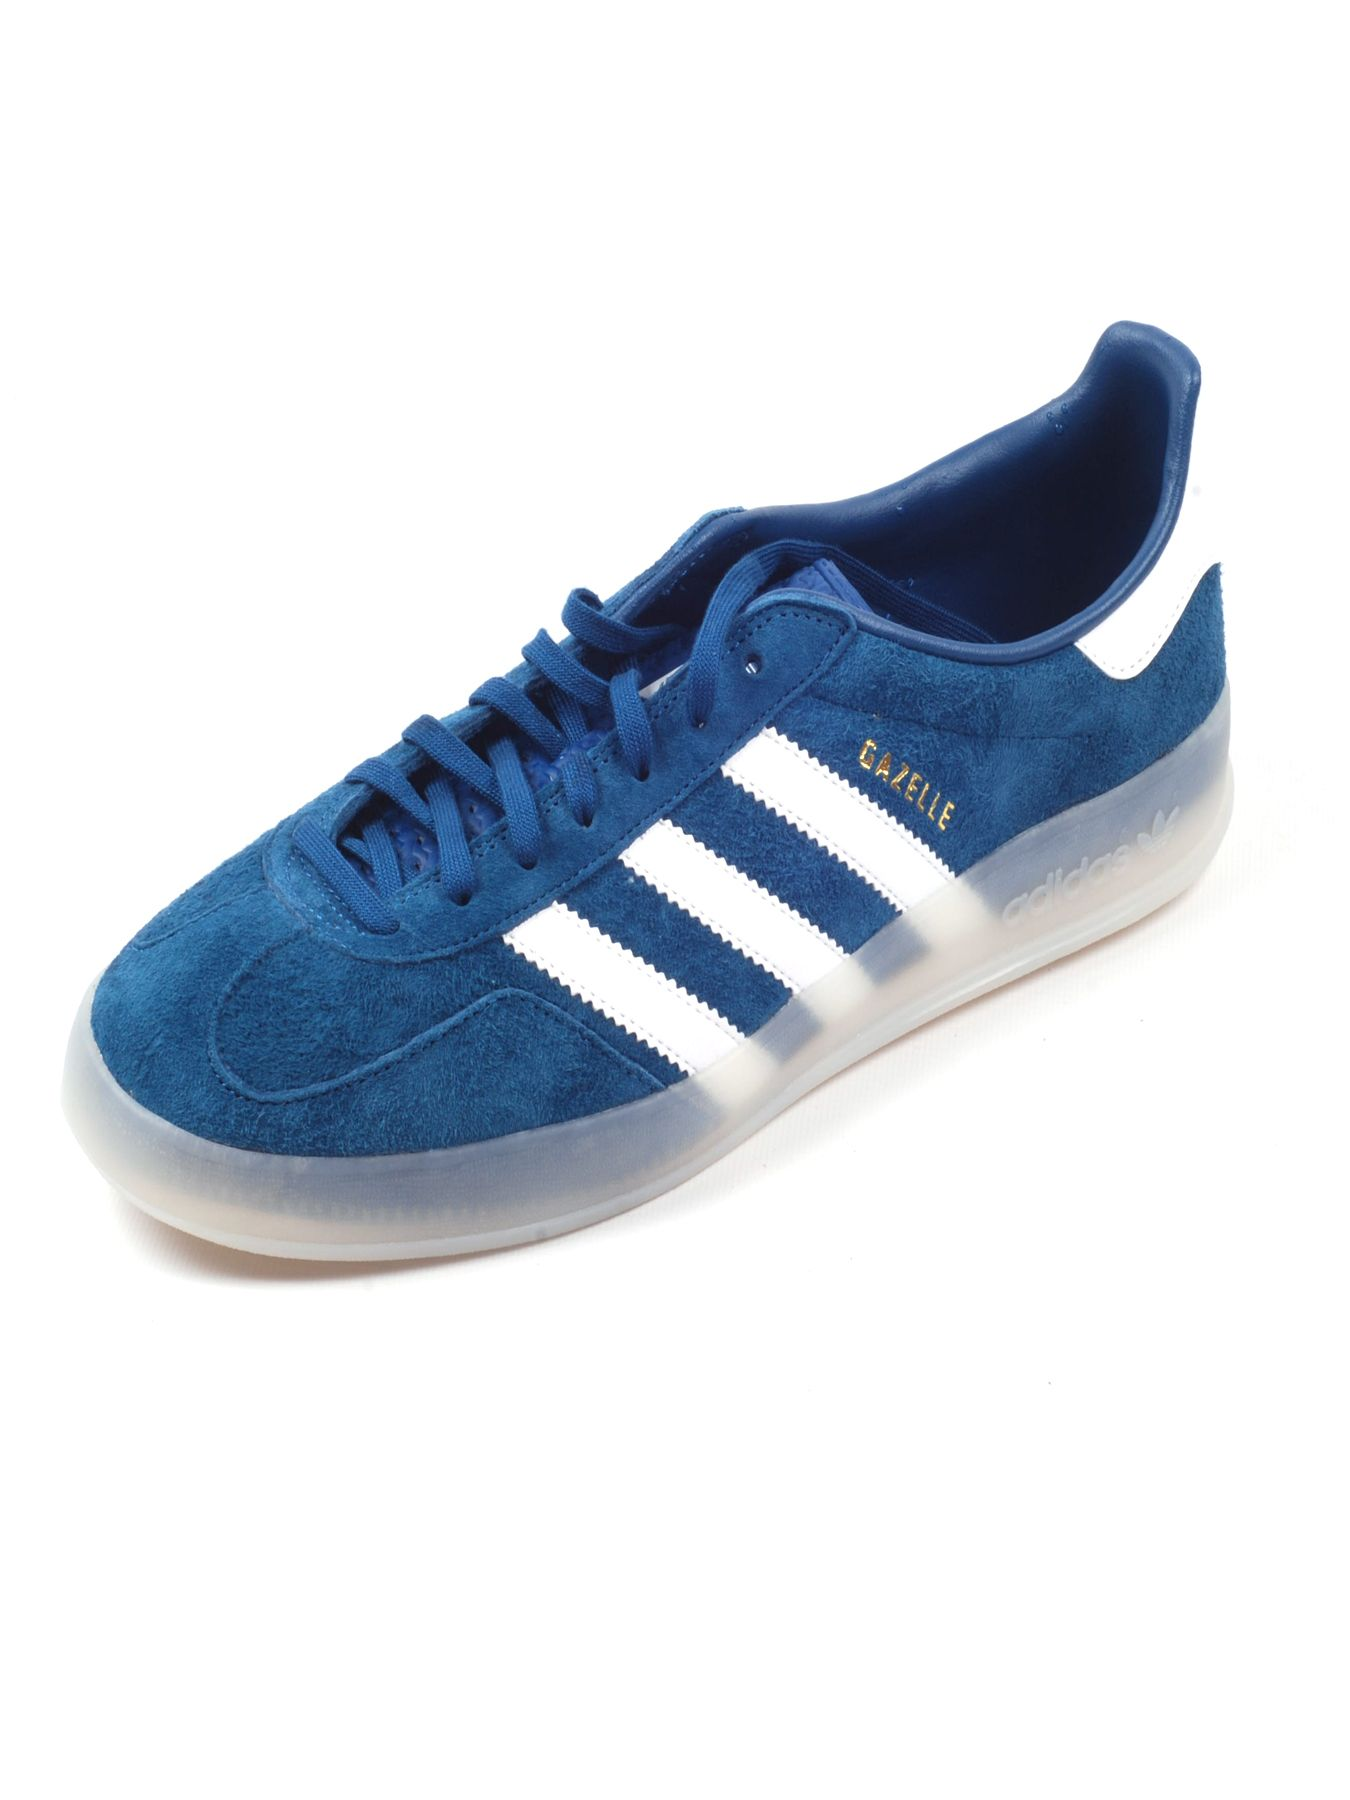 huge selection of f83bc d187a Adidas Mallison Spezial launches 21st September - Adidas Spezial AW18 range   Adidas lover